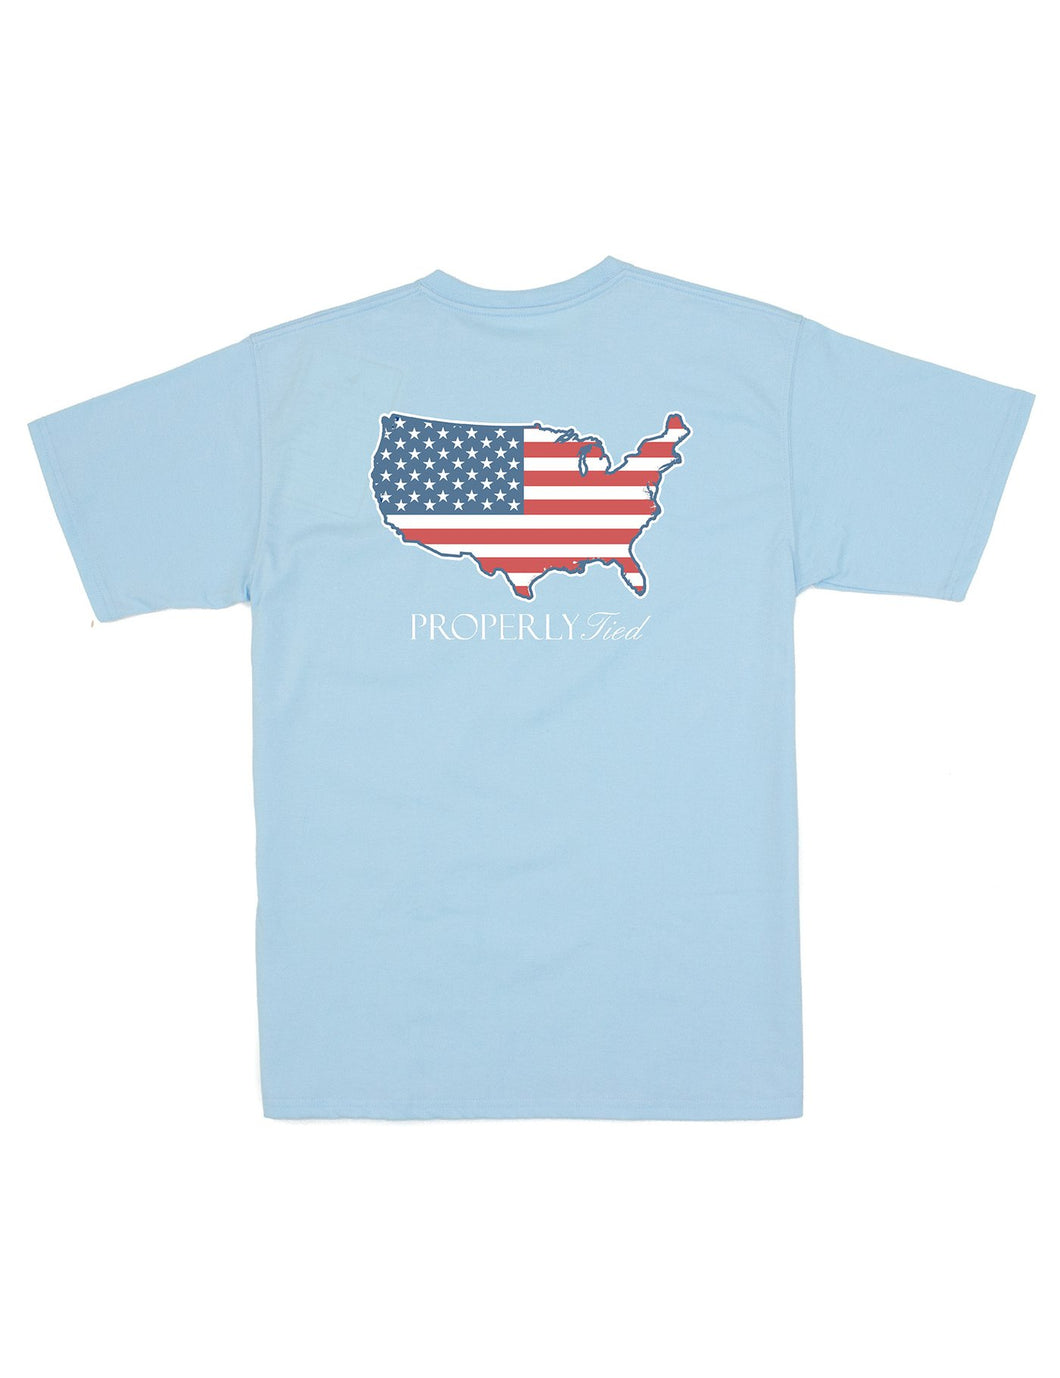 LD OLD GLORY SS POWDER BLUE